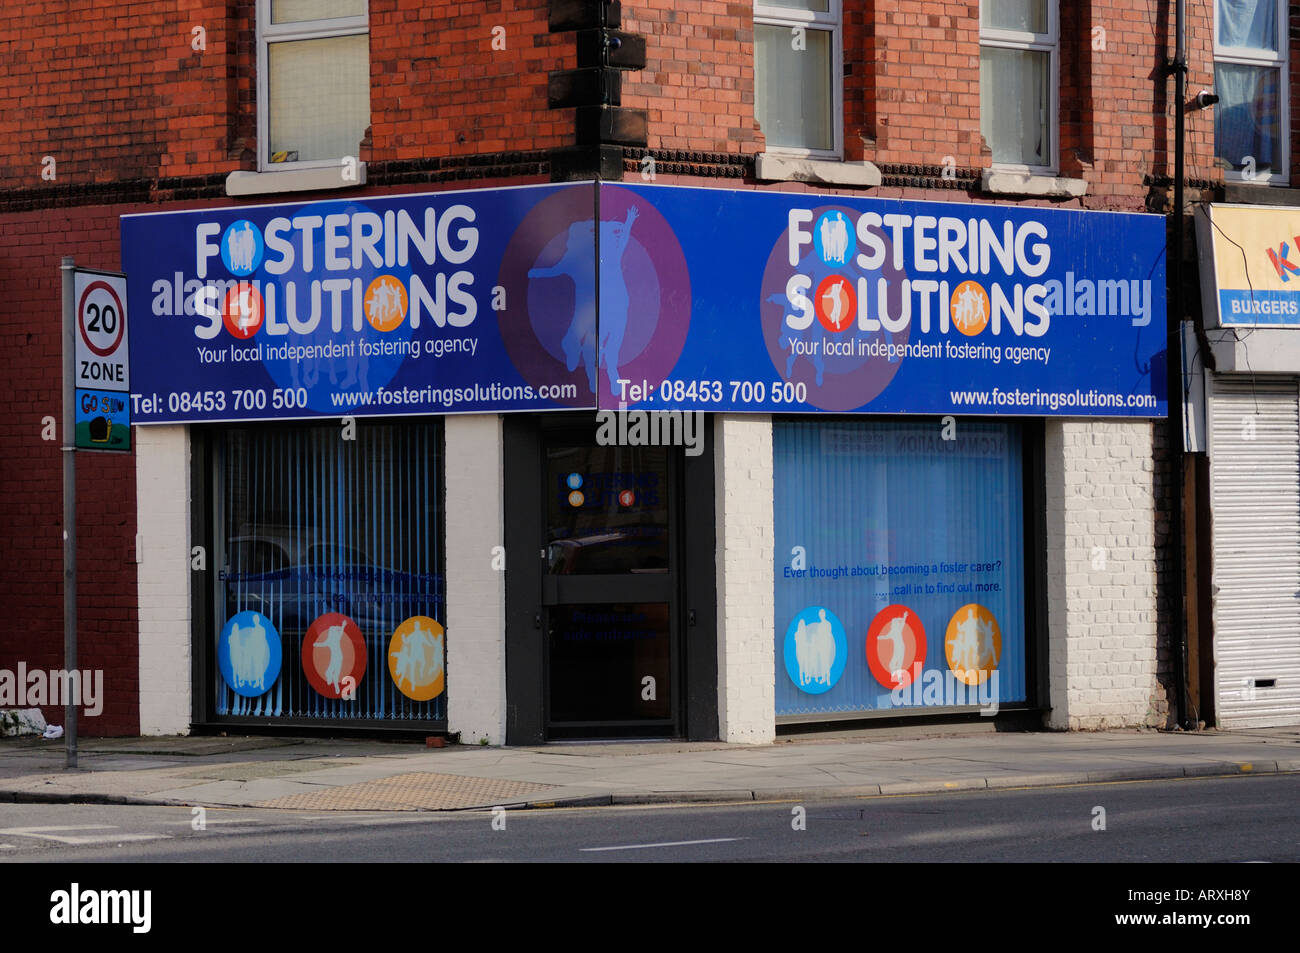 Fostering Solutions shop on Smithdown Road in Liverpool - Stock Image